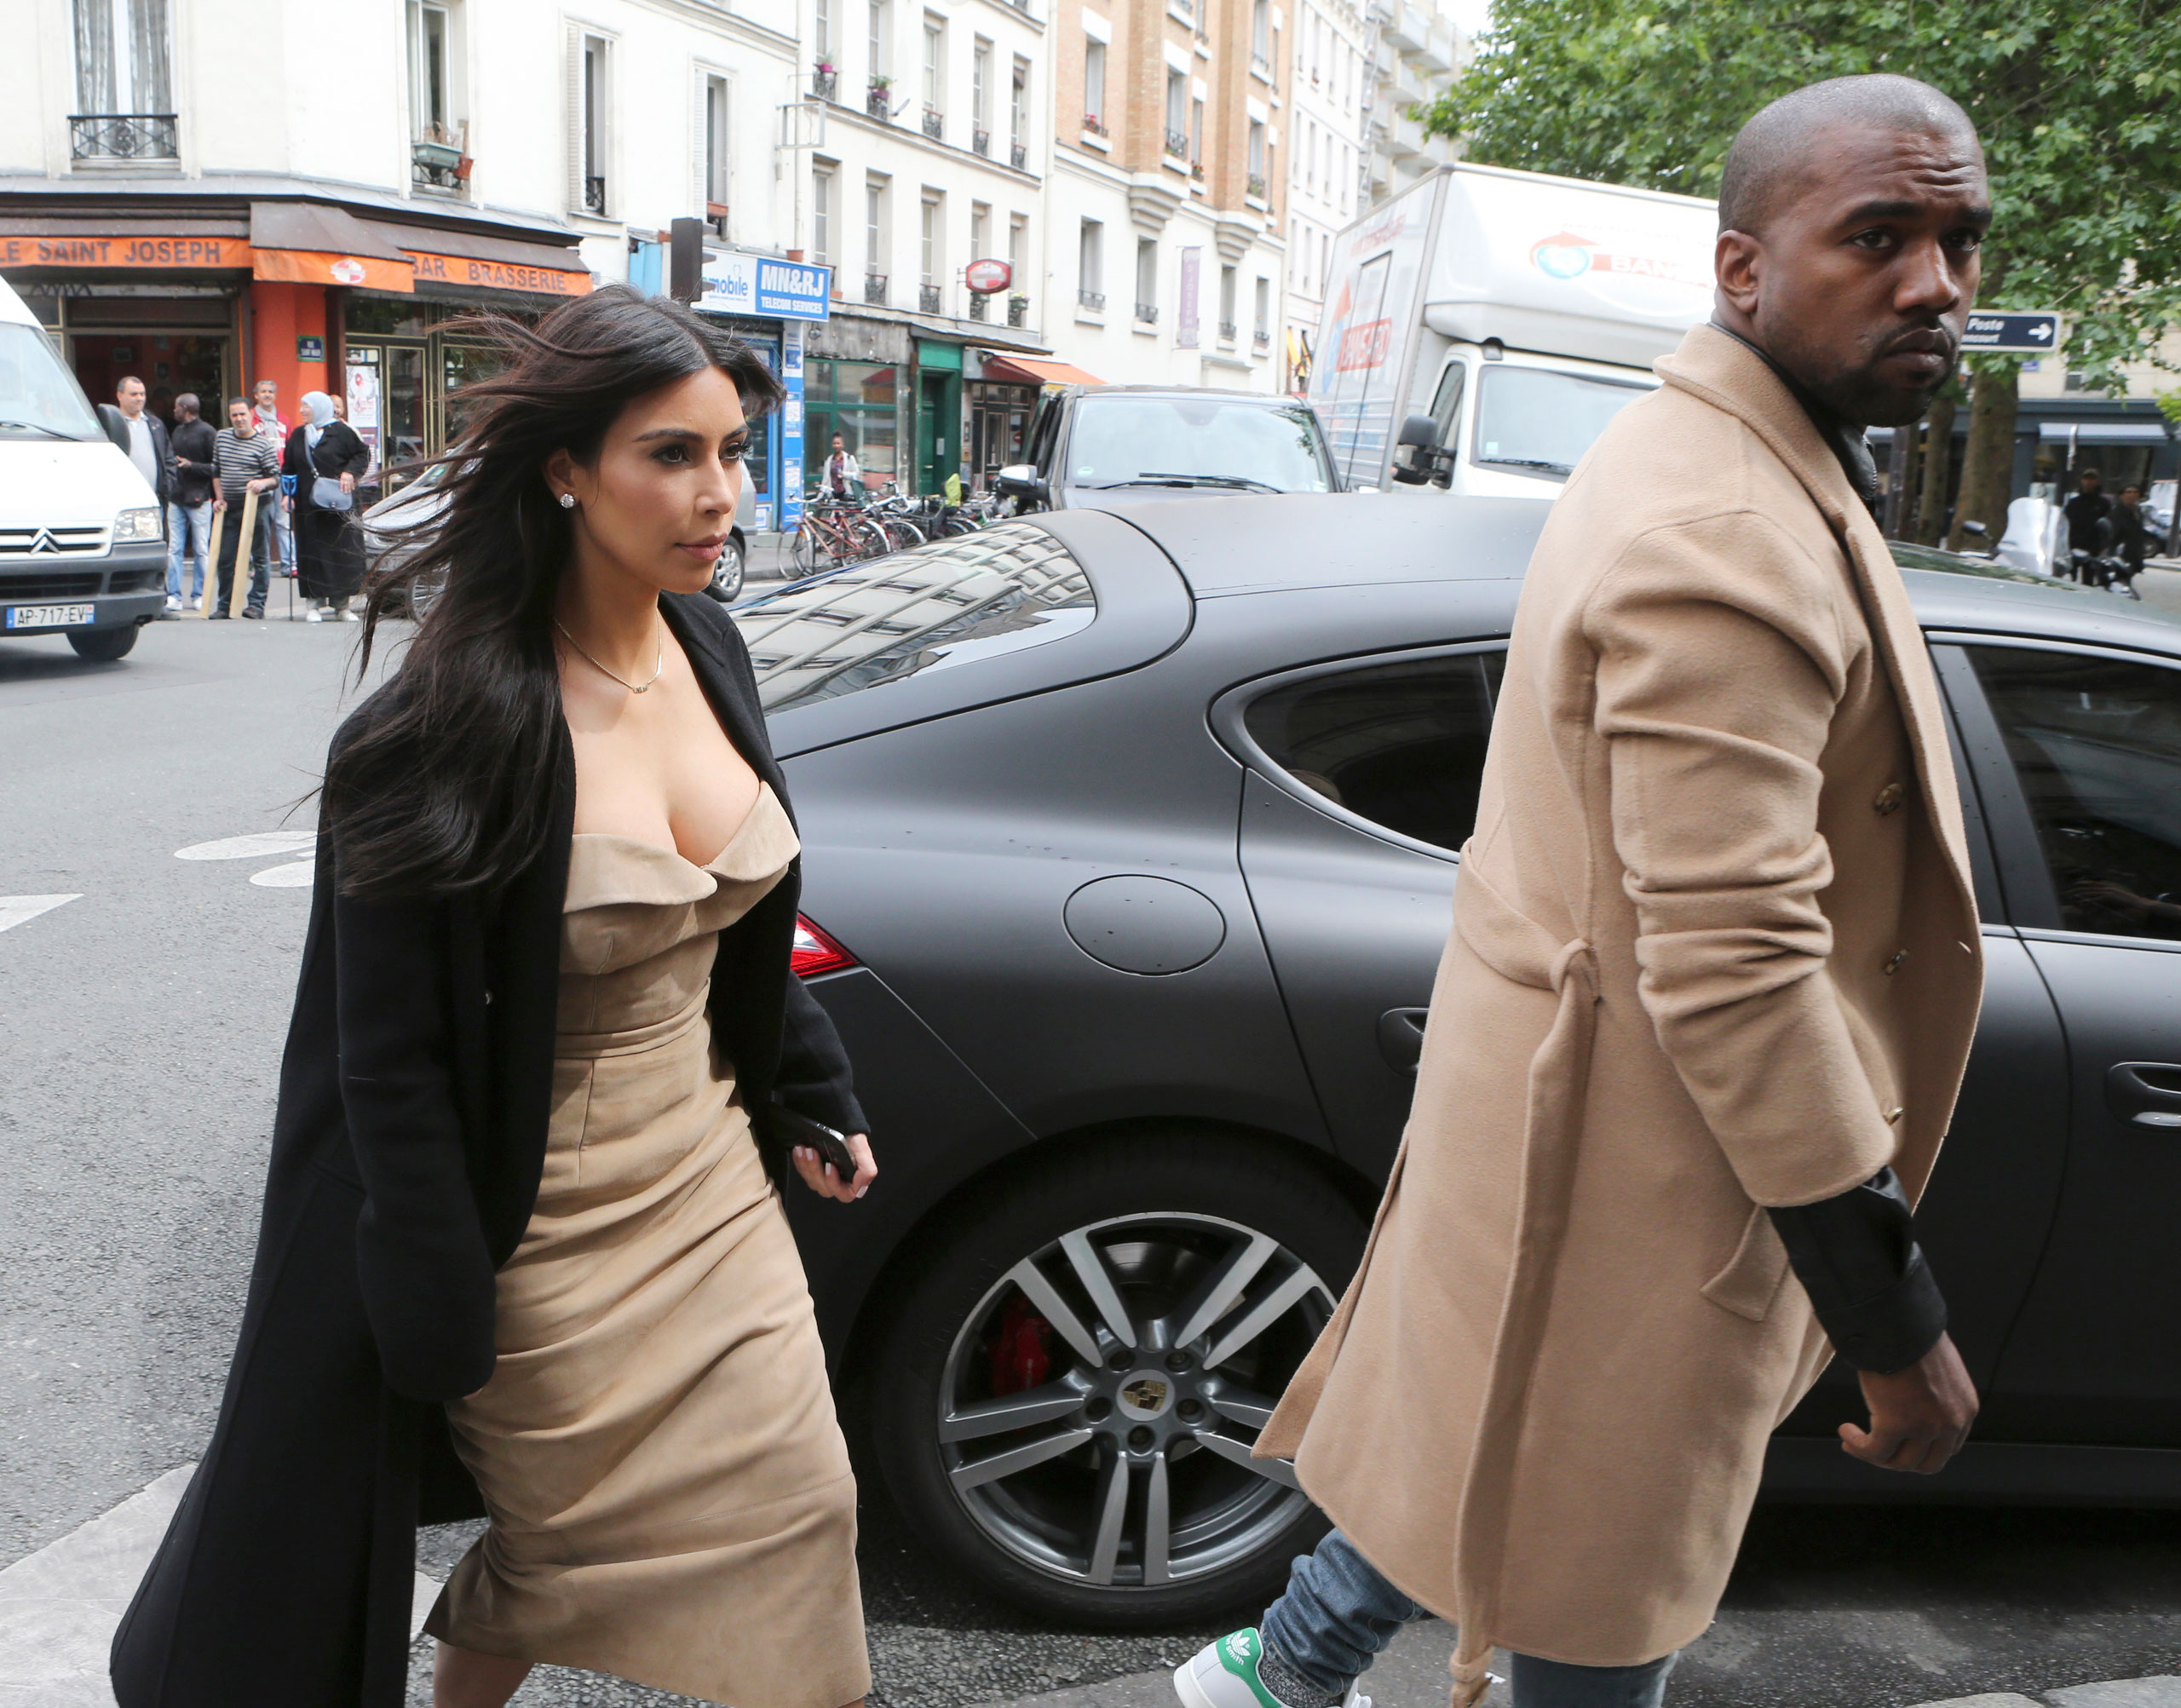 This is Kimye's version of pre-wedding sweatpants in Paris before their fashion-forward nupitals at Forte di Belvedere in Florence in May 2014, where Kim wore a  Givenchy Haute Couture gown.